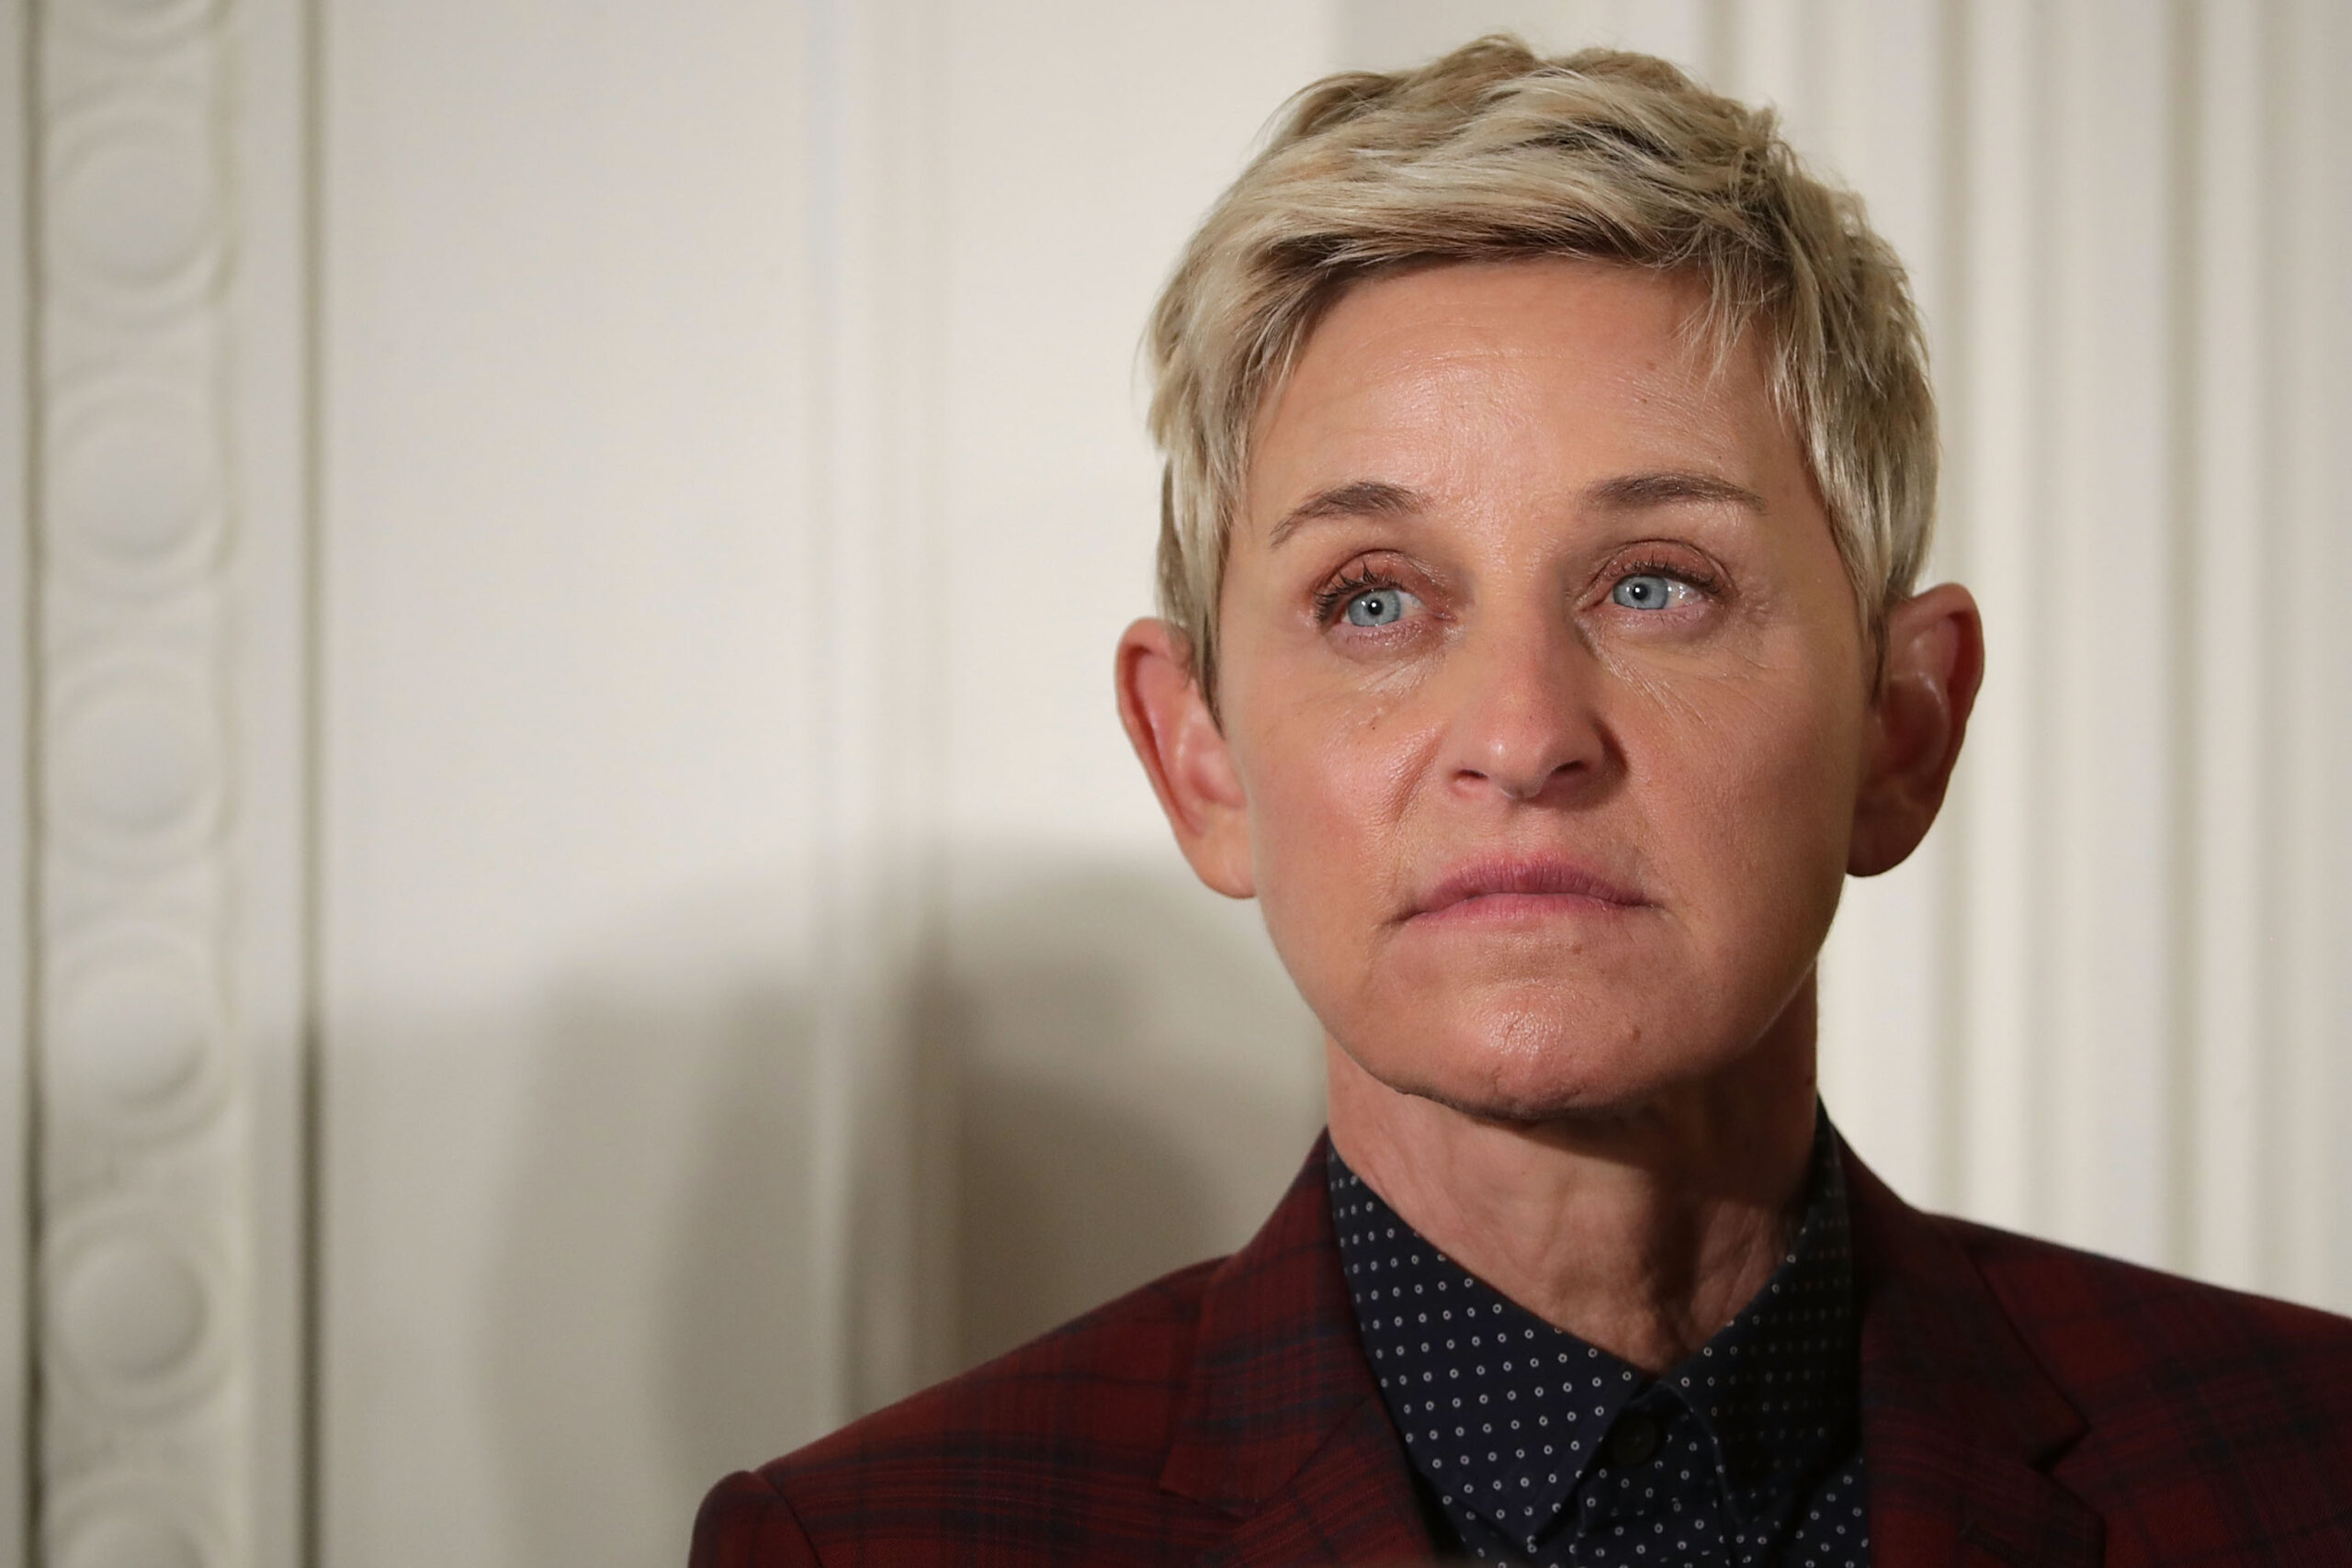 Katy Perry defends Ellen DeGeneres in late-night tweets